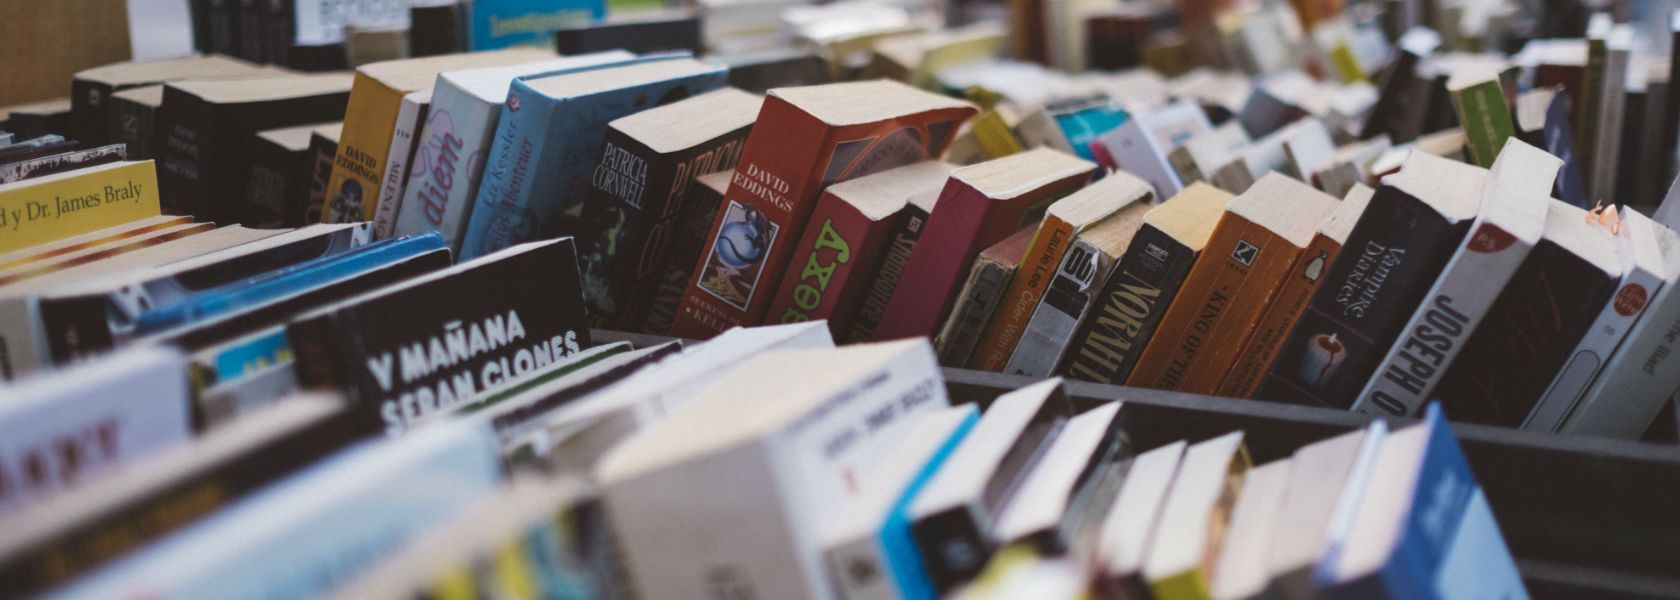 Bookcelerator — The top books that will make you smarter